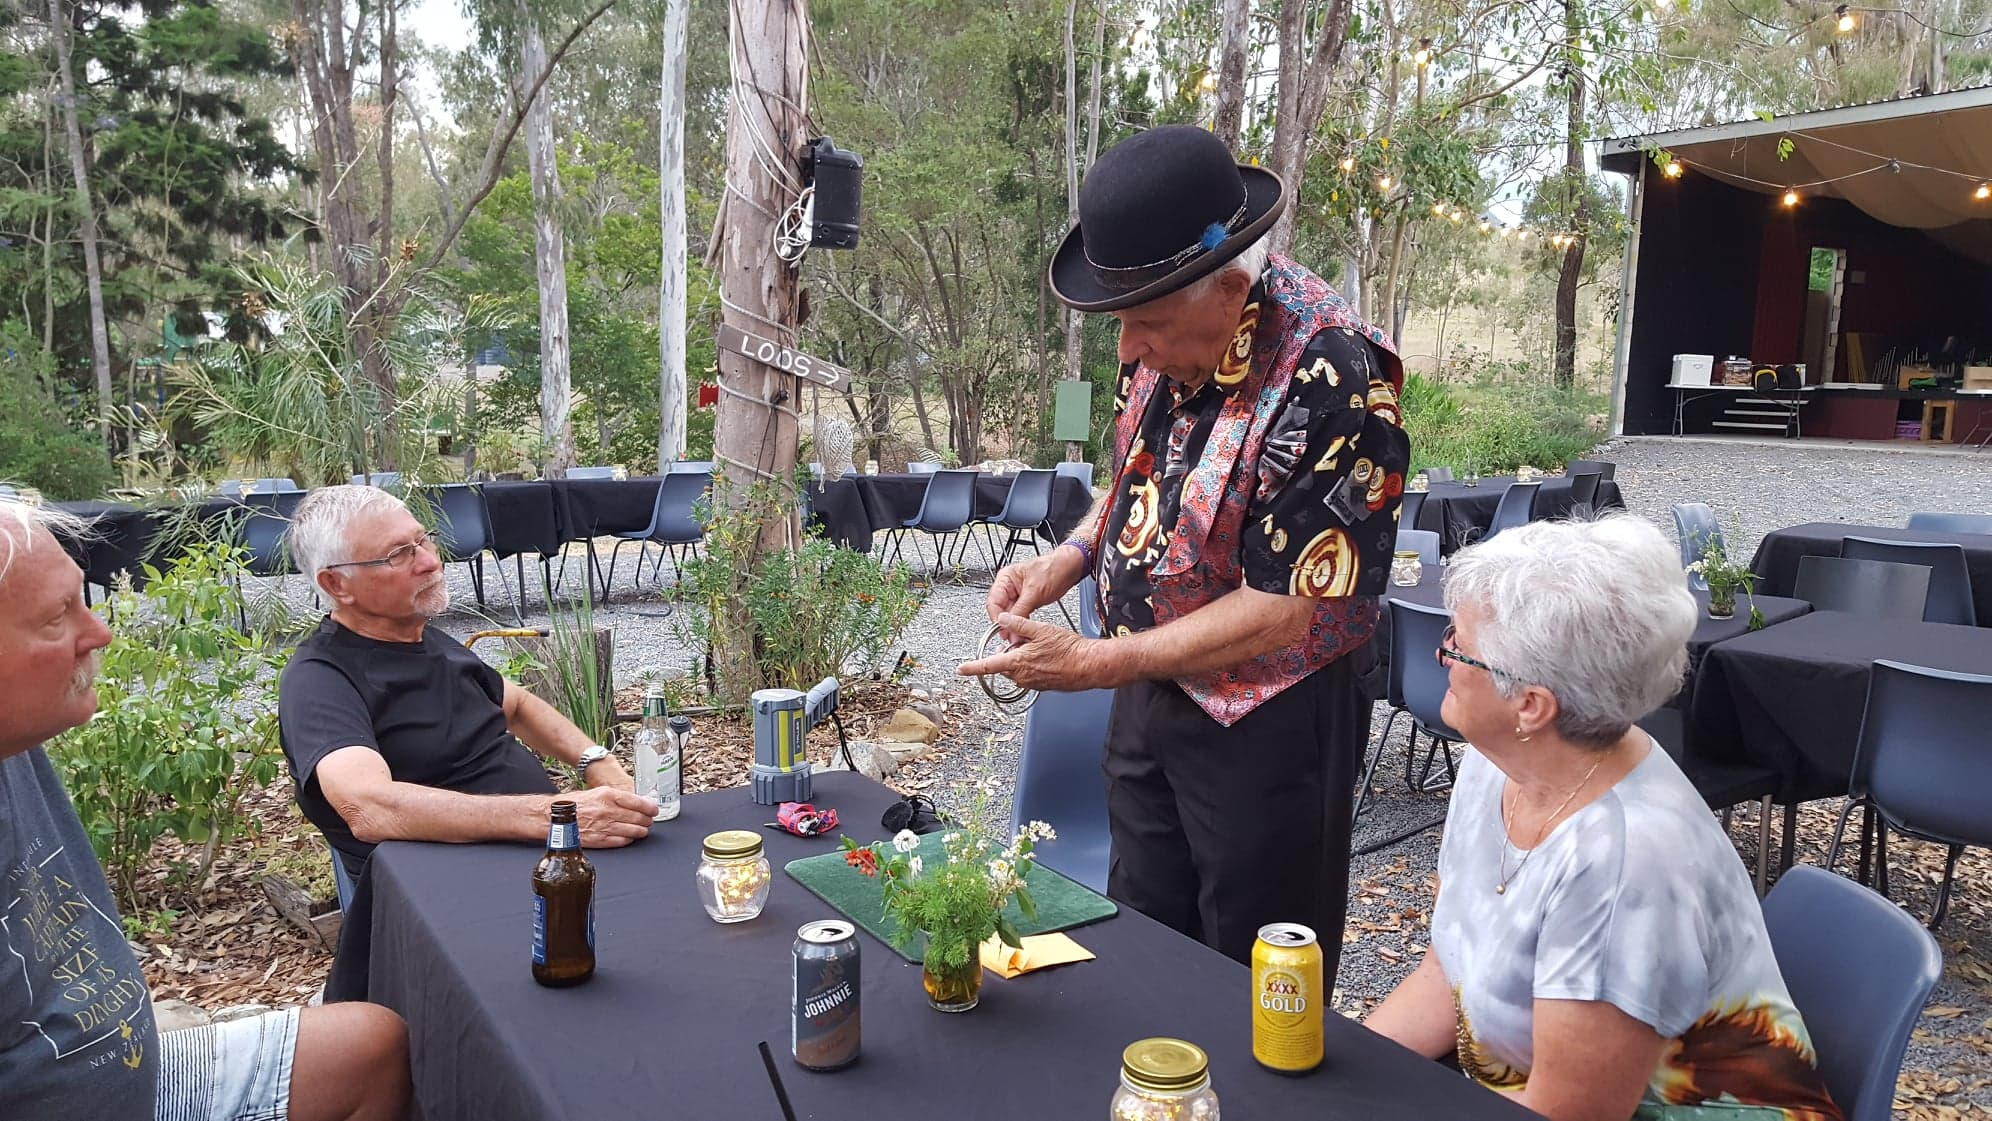 A magician doing tricks for the diners